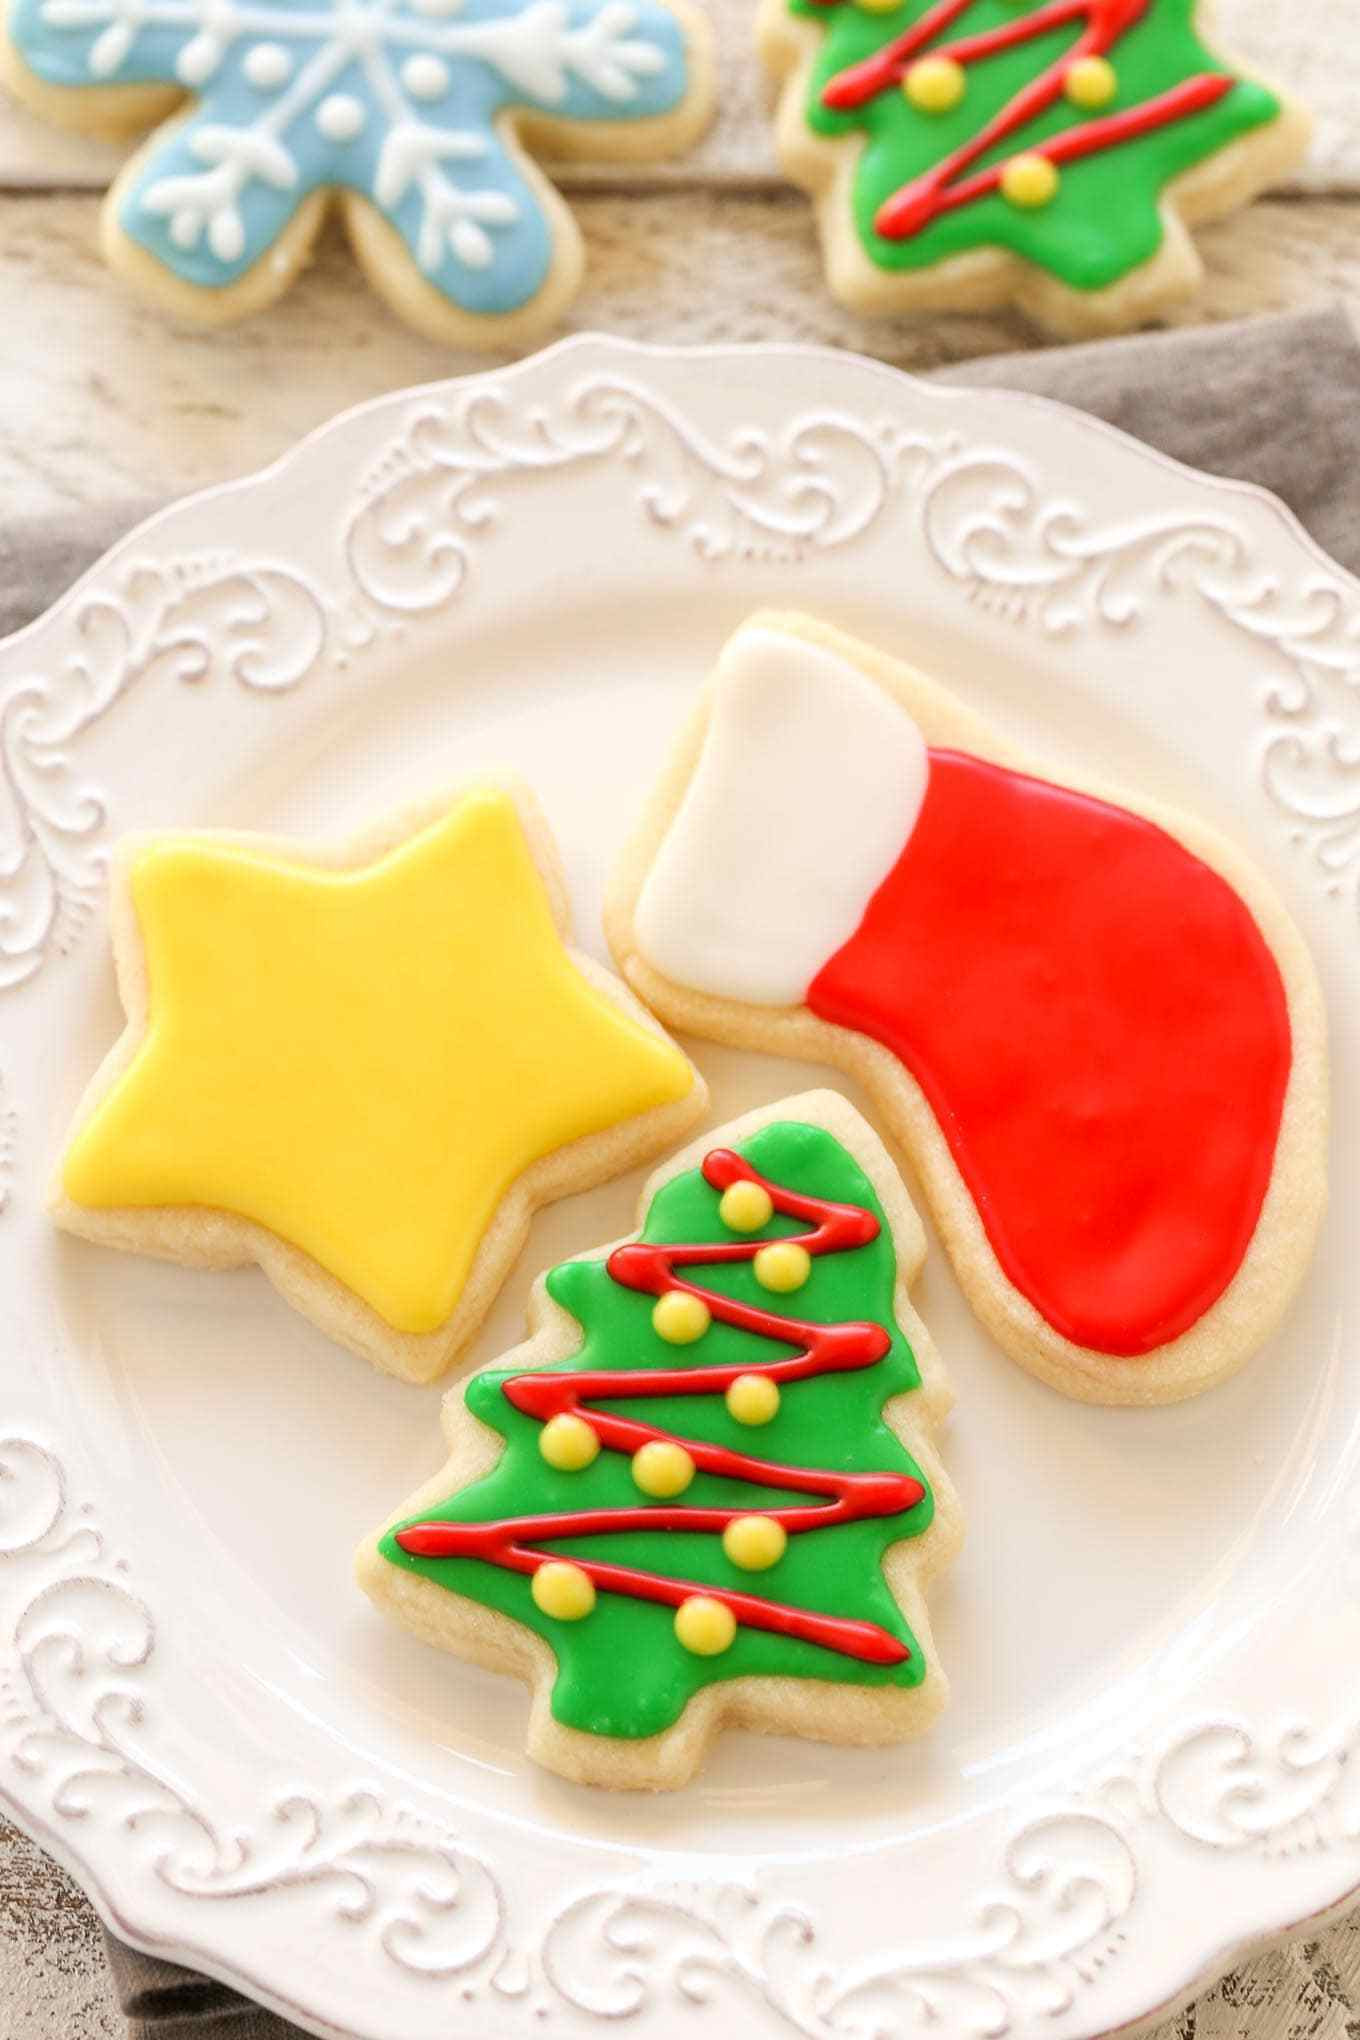 Decorated Christmas Cookies Recipes  Soft Christmas Cut Out Sugar Cookies Live Well Bake ten